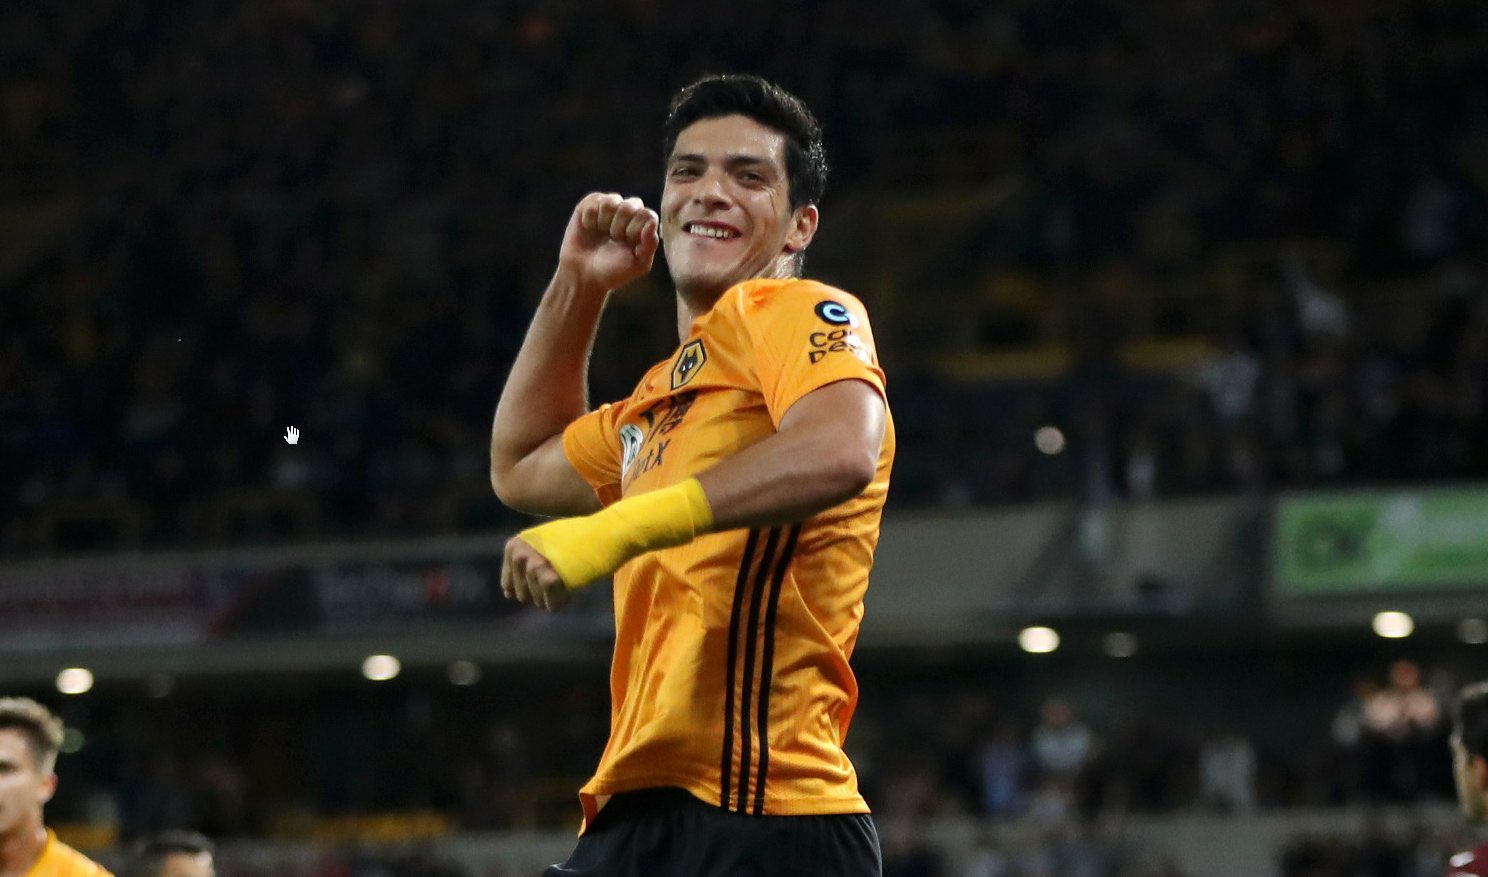 Write off this group at your peril. This is Nuno's Wolves... 🐺🔥 #wwfc https://t.co/pKYIpg3pfo